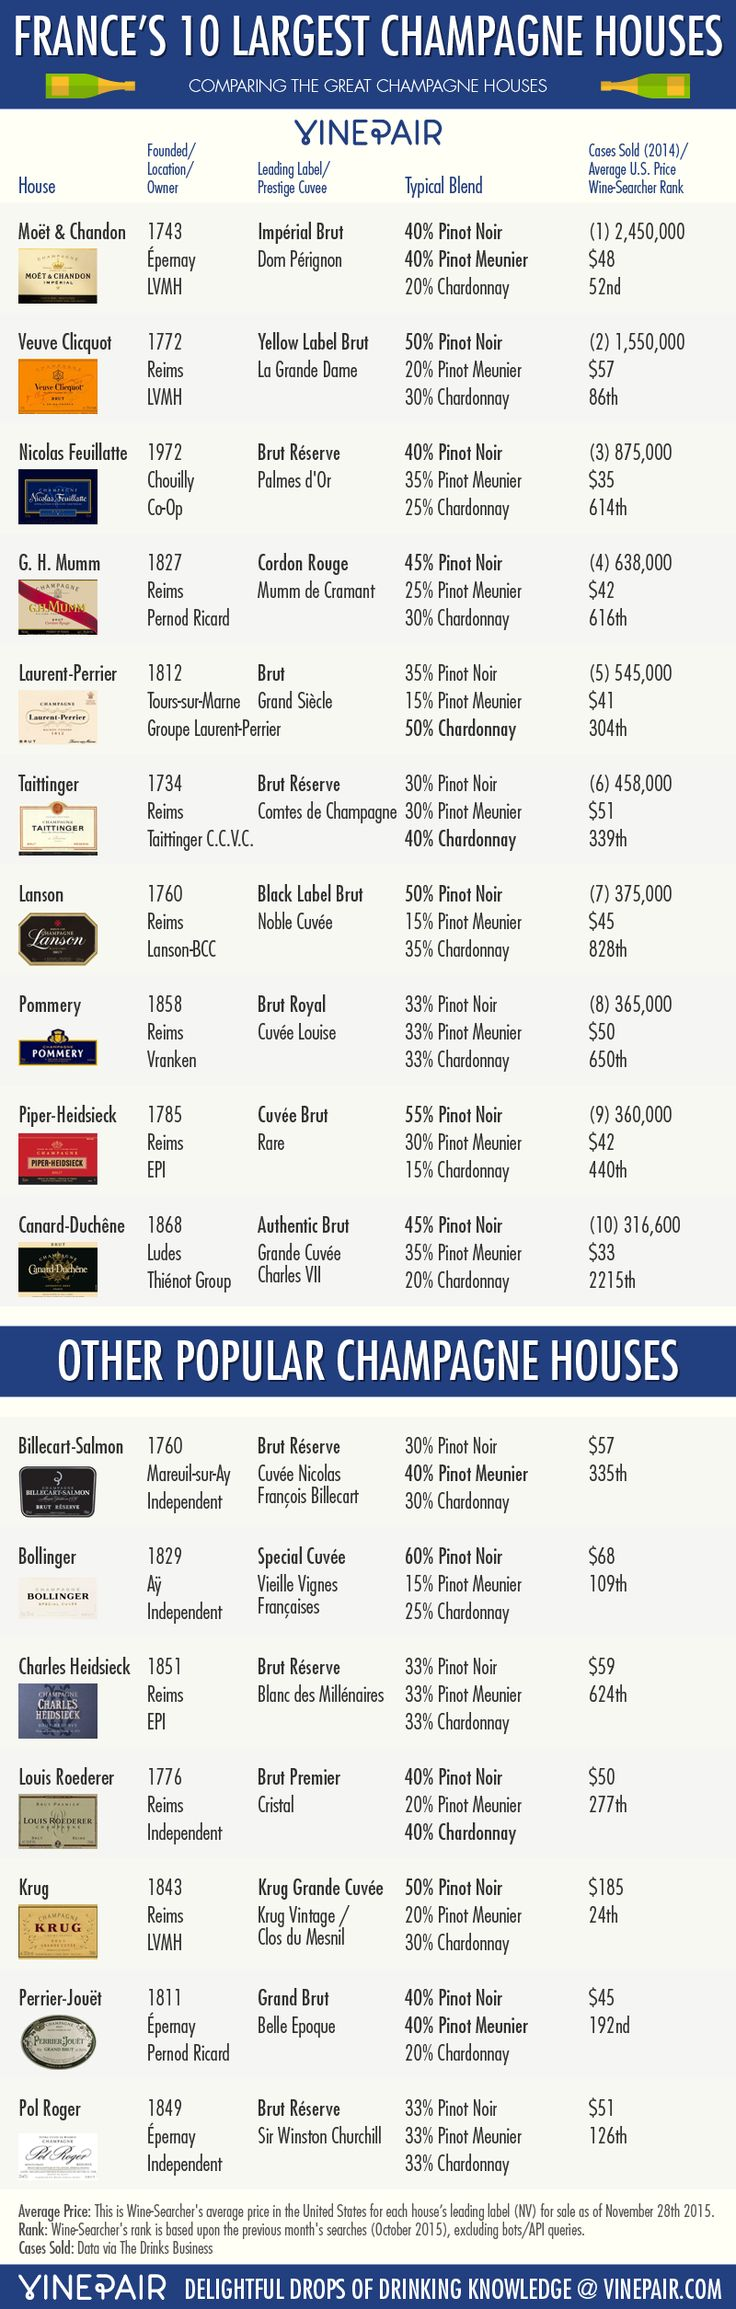 Comparing France's 10 Largest Champagne Houses [INFOGRAPHIC]